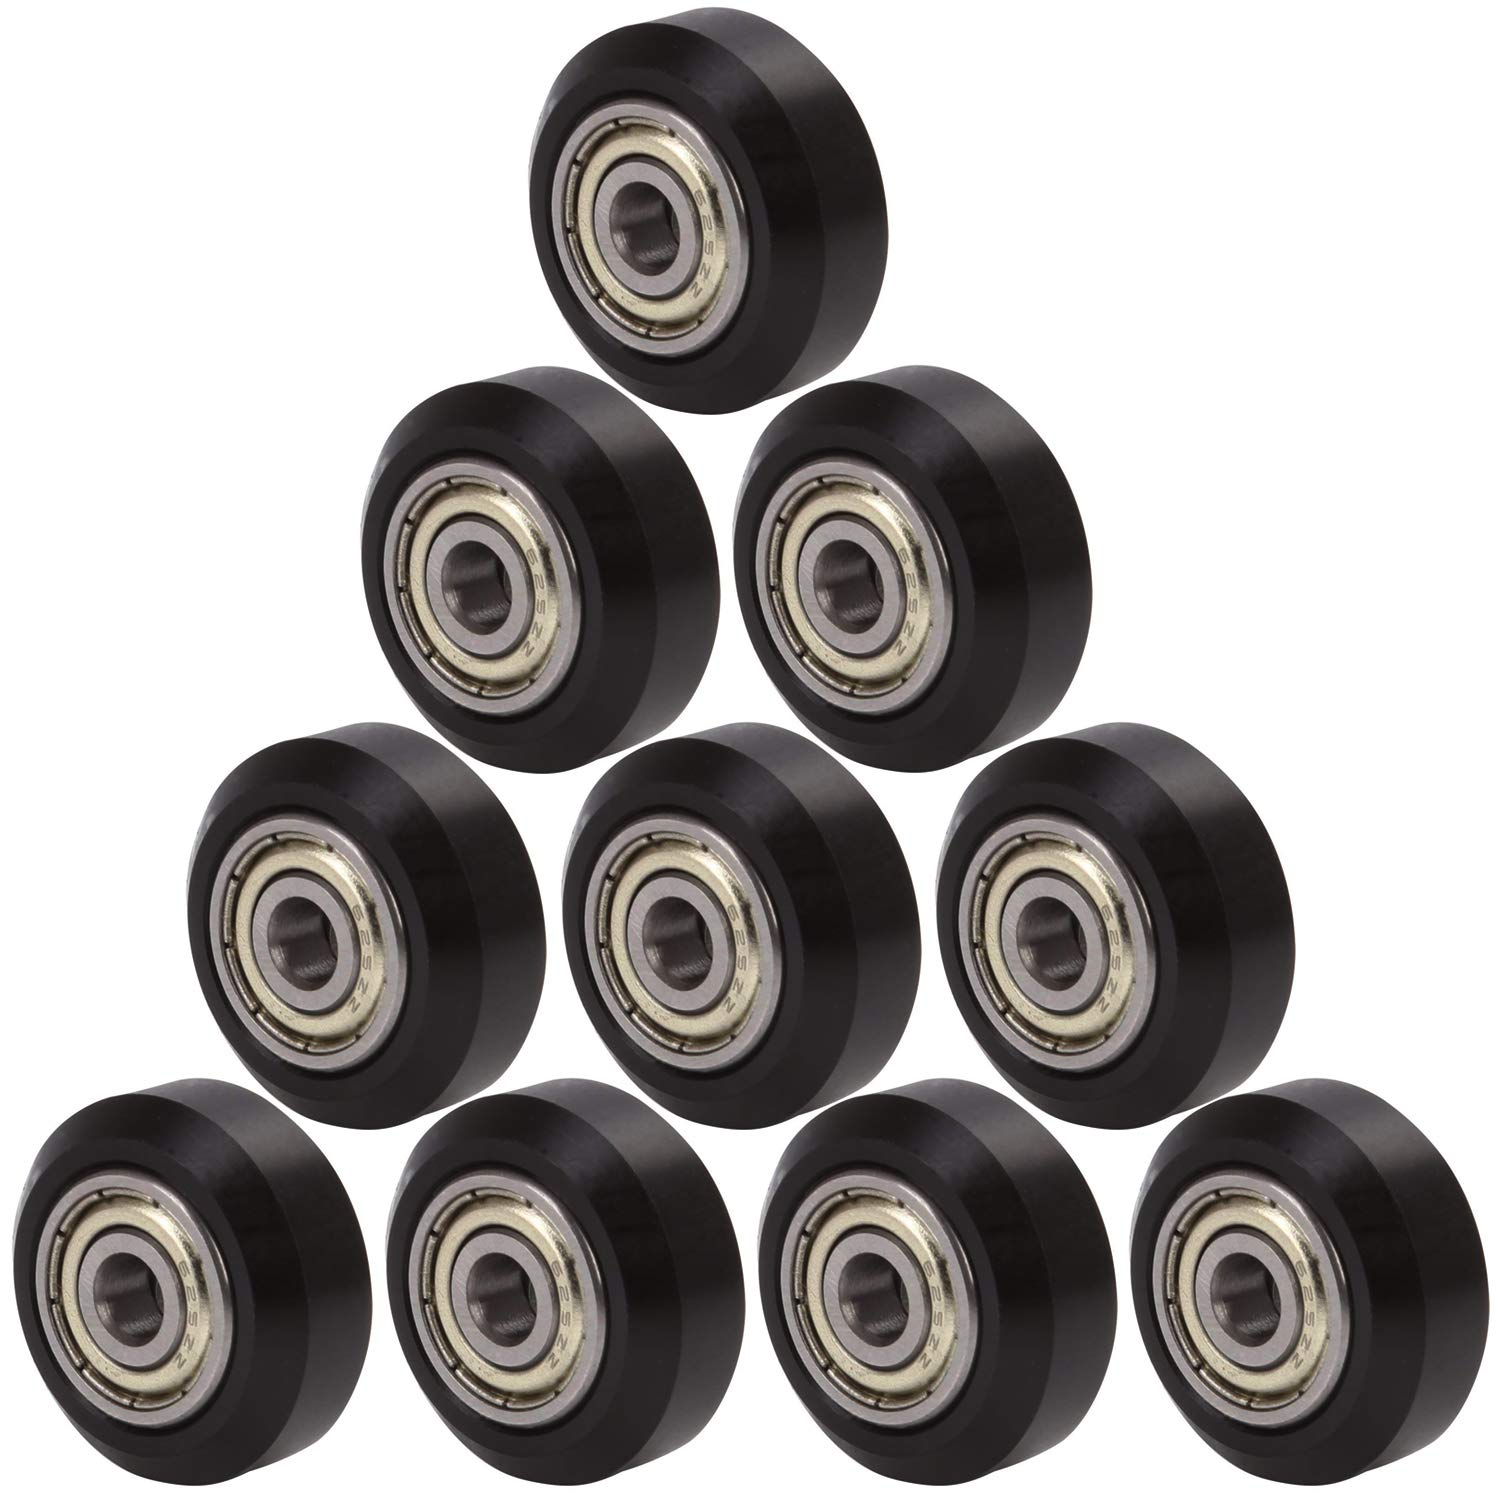 V-type Bearing Wheels Round 10pcs Big Pulley For 3D Printer Replacement